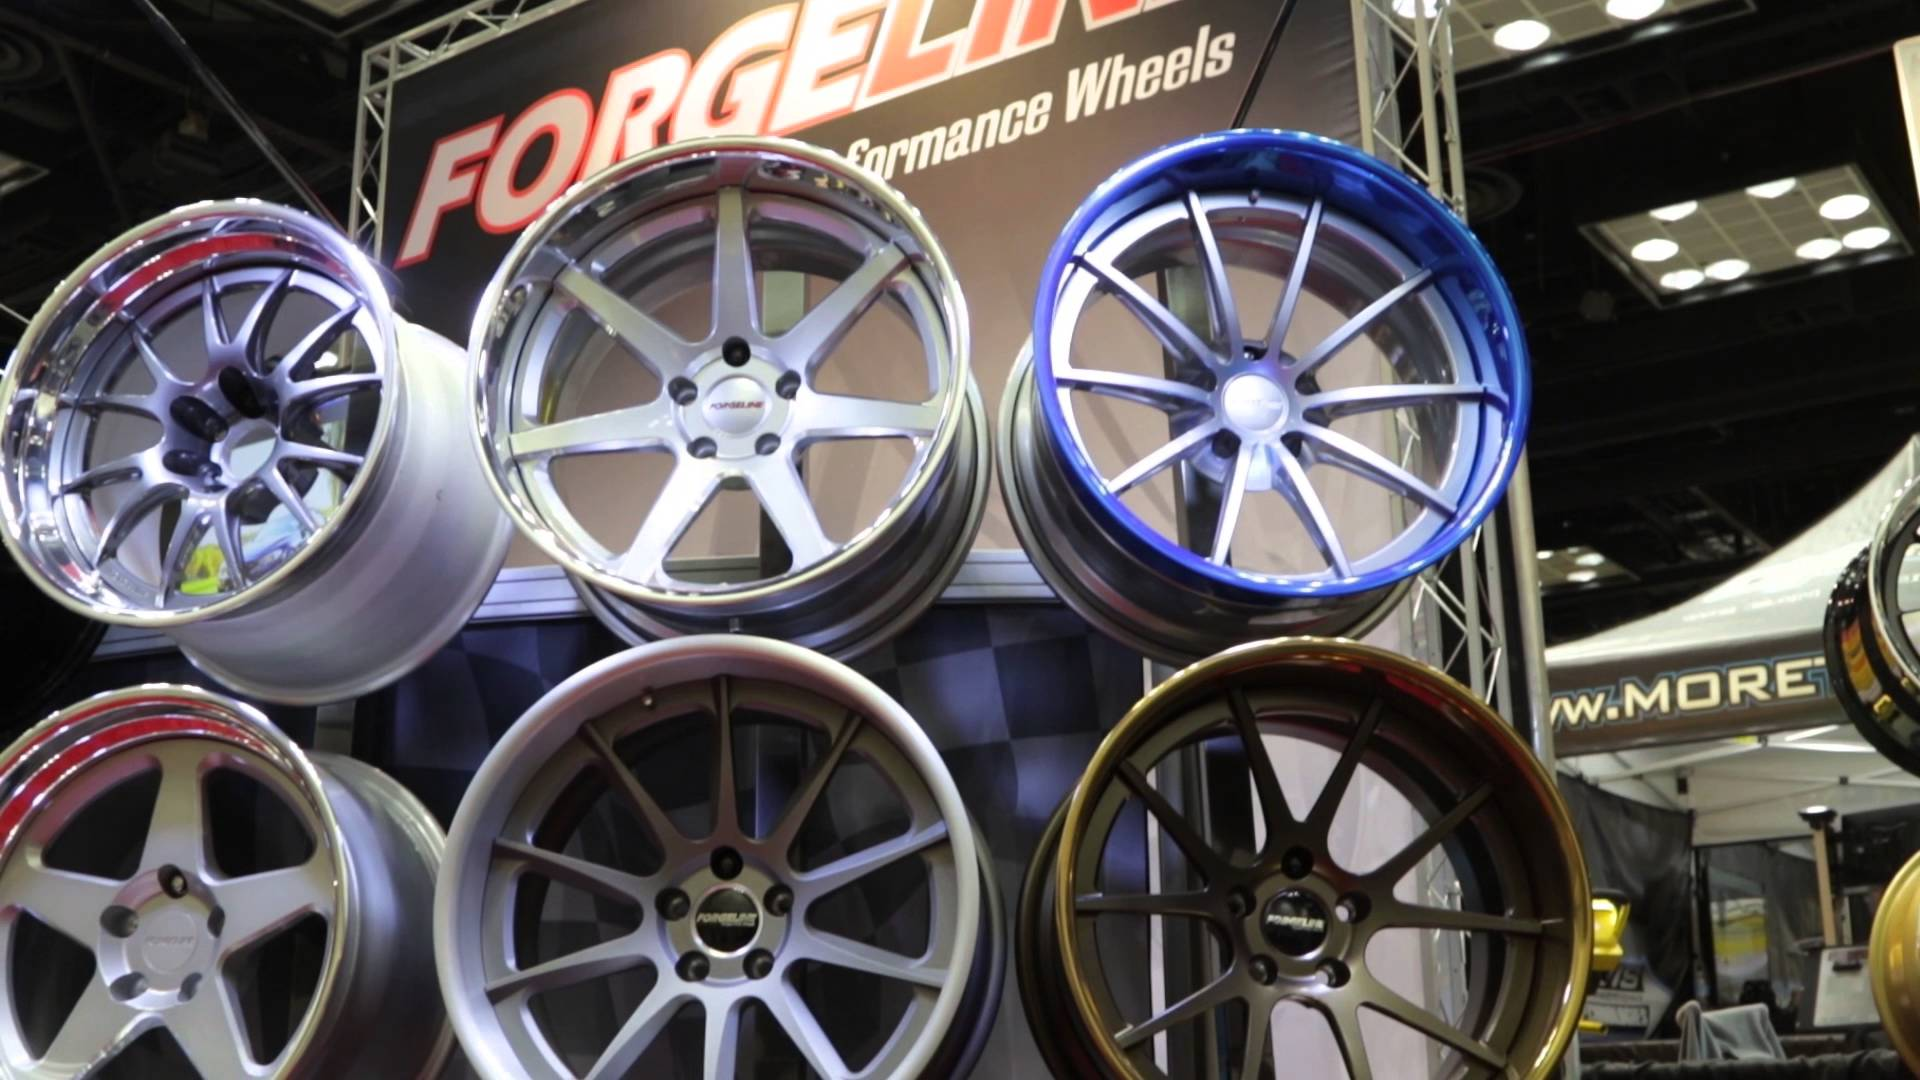 Forgeline Motorsports Selected as the American Distributor of Team Dynamics